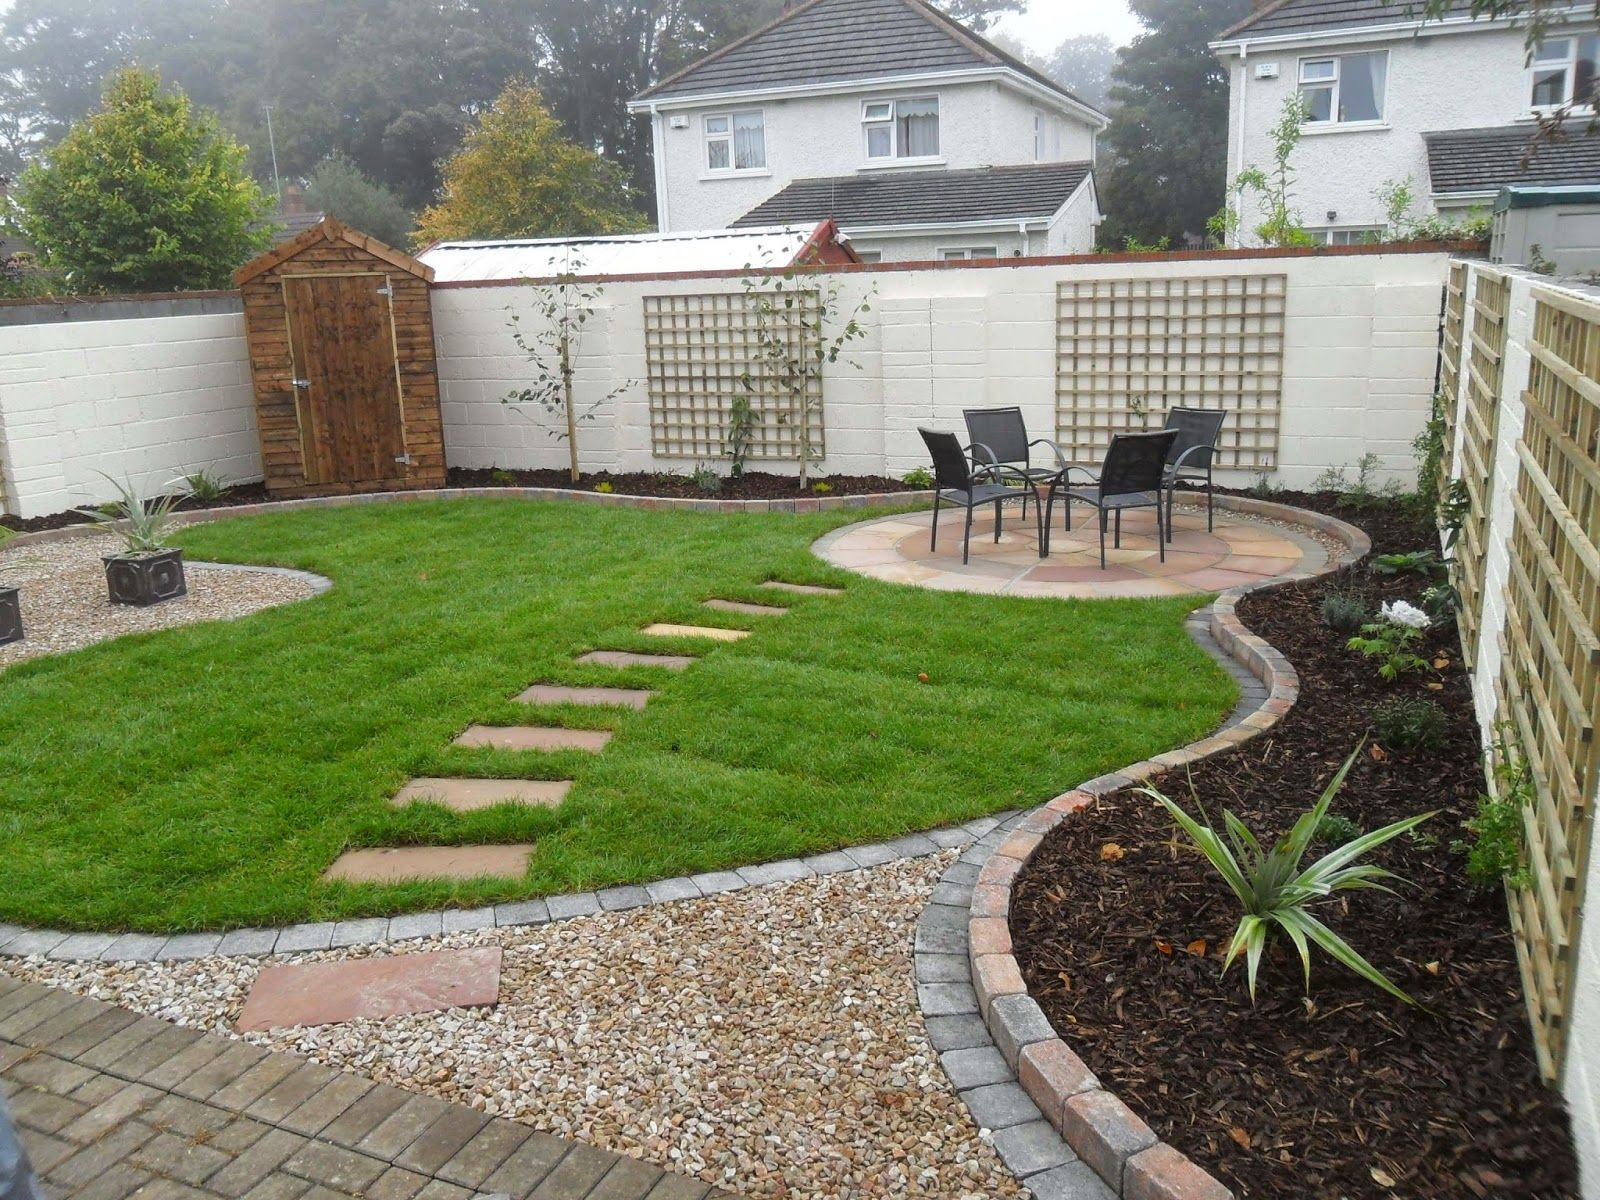 Garden Design Circular Lawns - Circular Lawns YouTube  Backyard